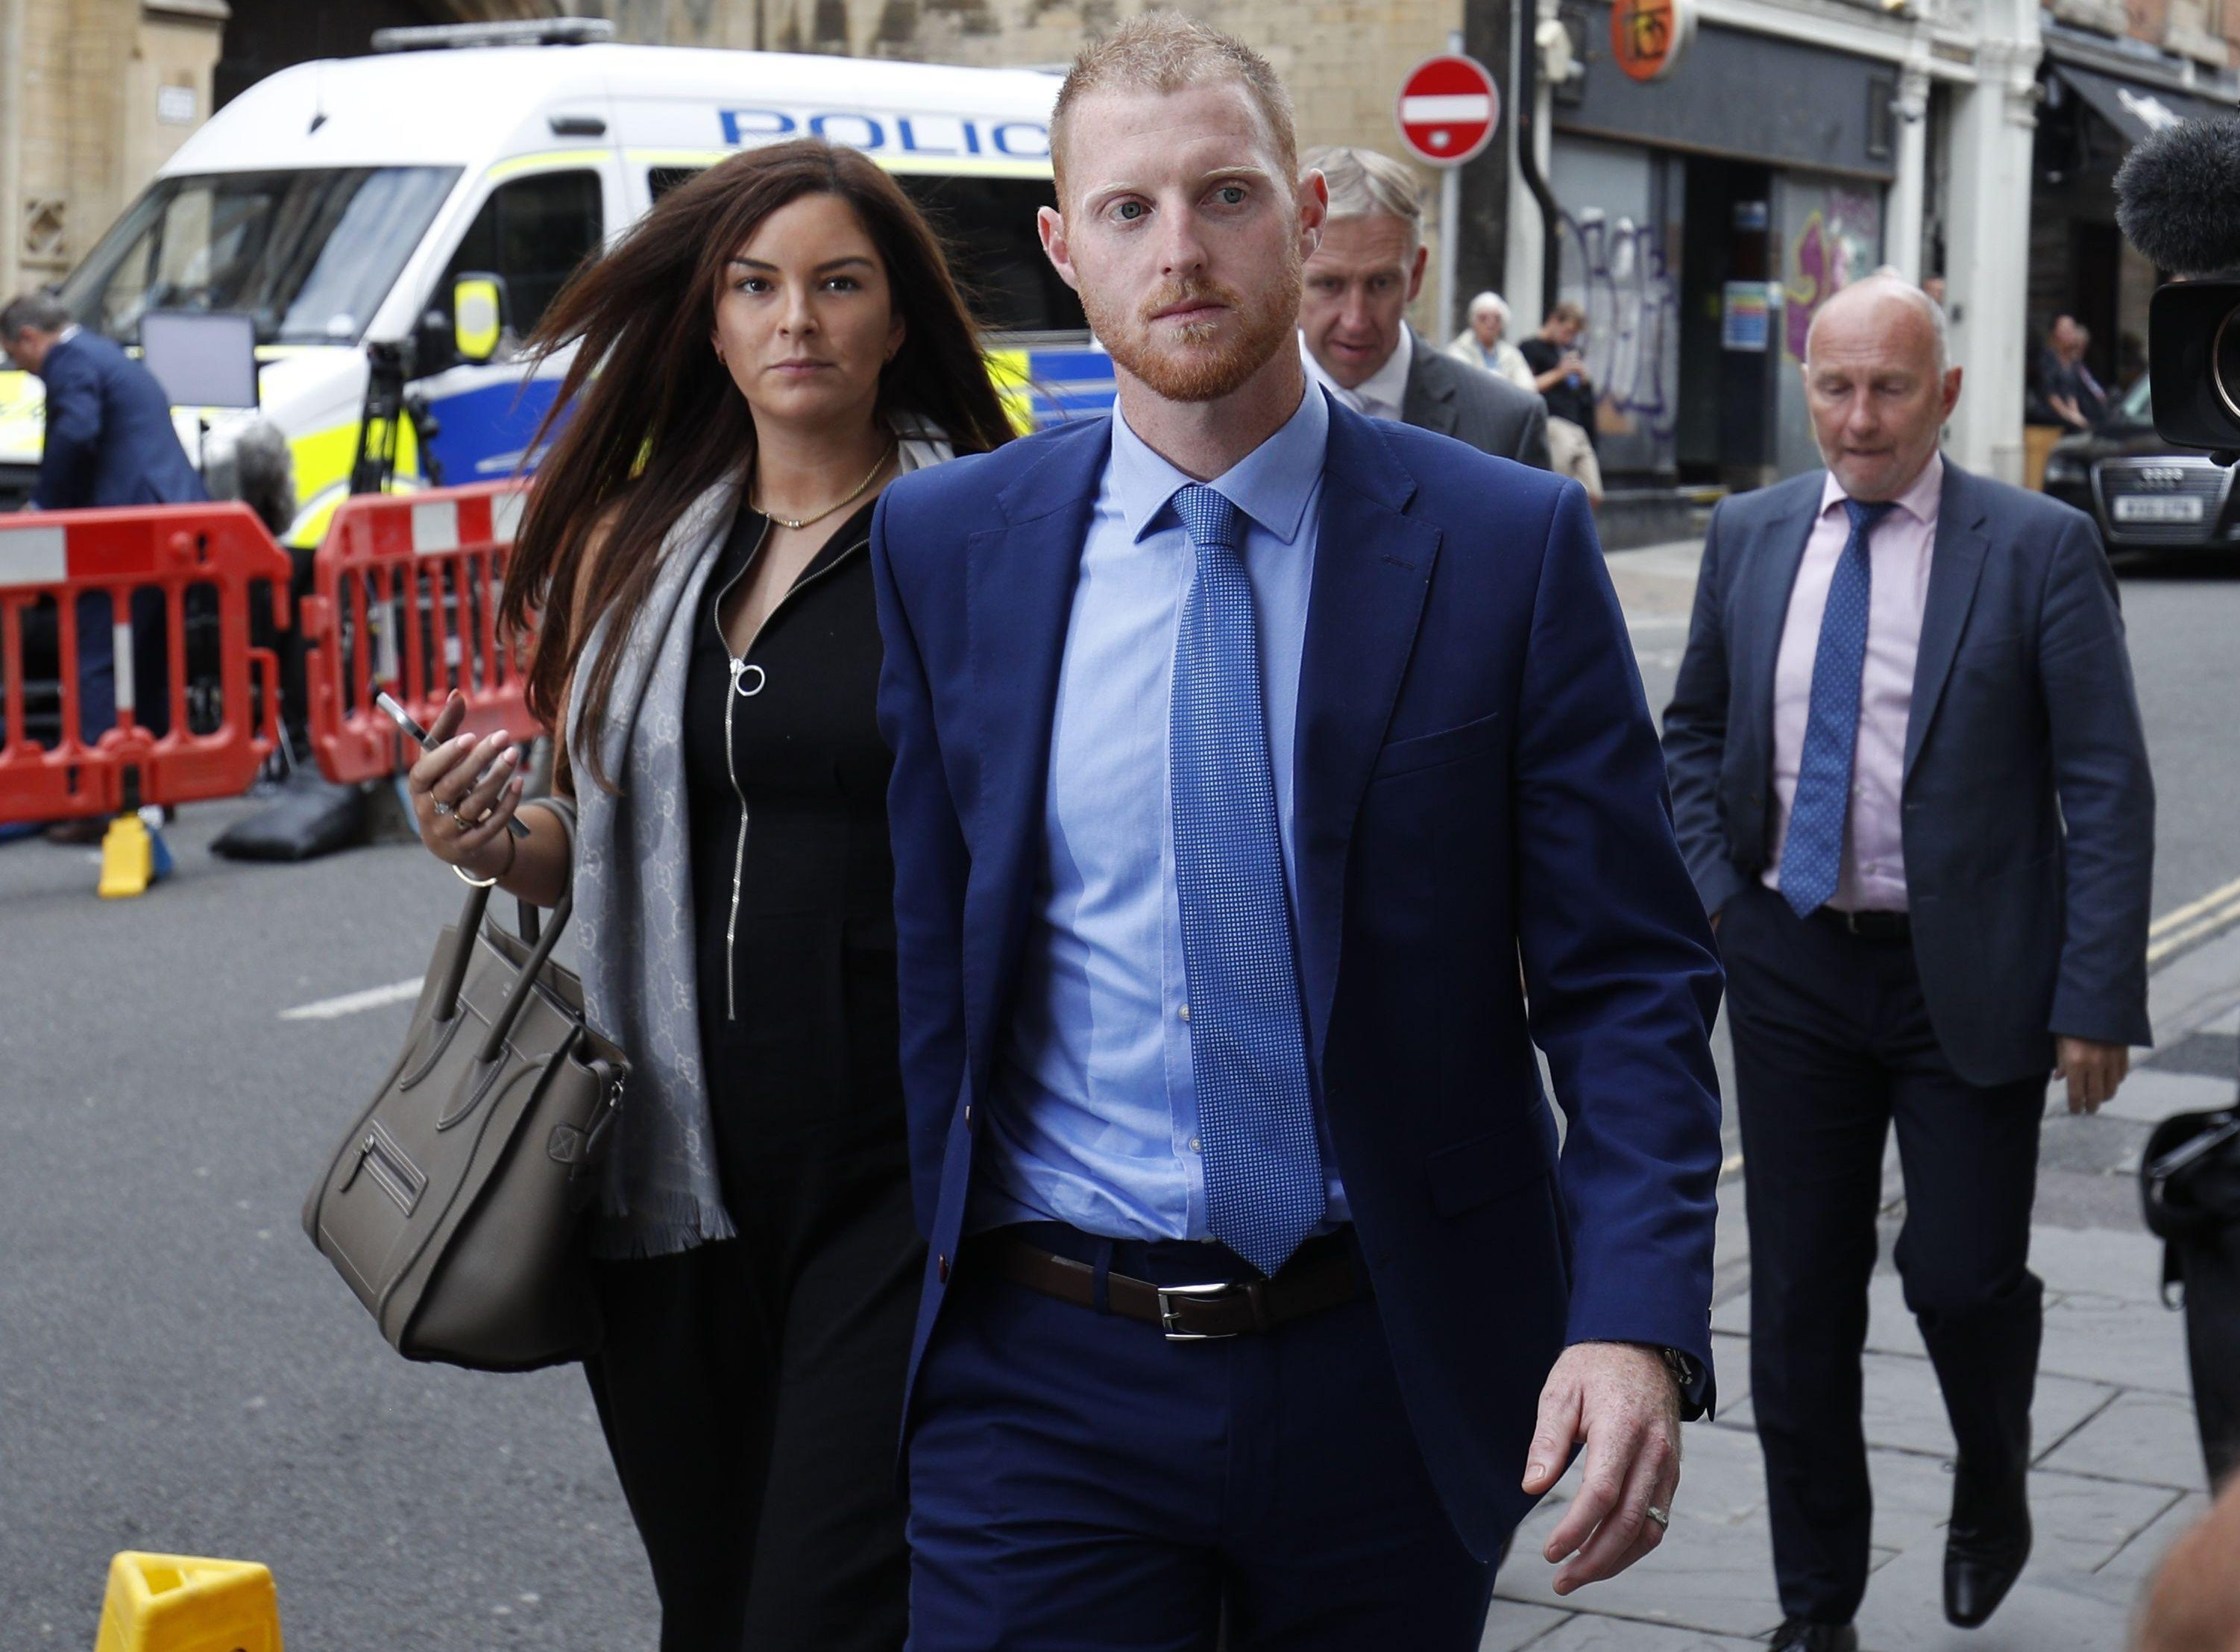 England star Ben Stokes must now wait for the jury to consider their verdict